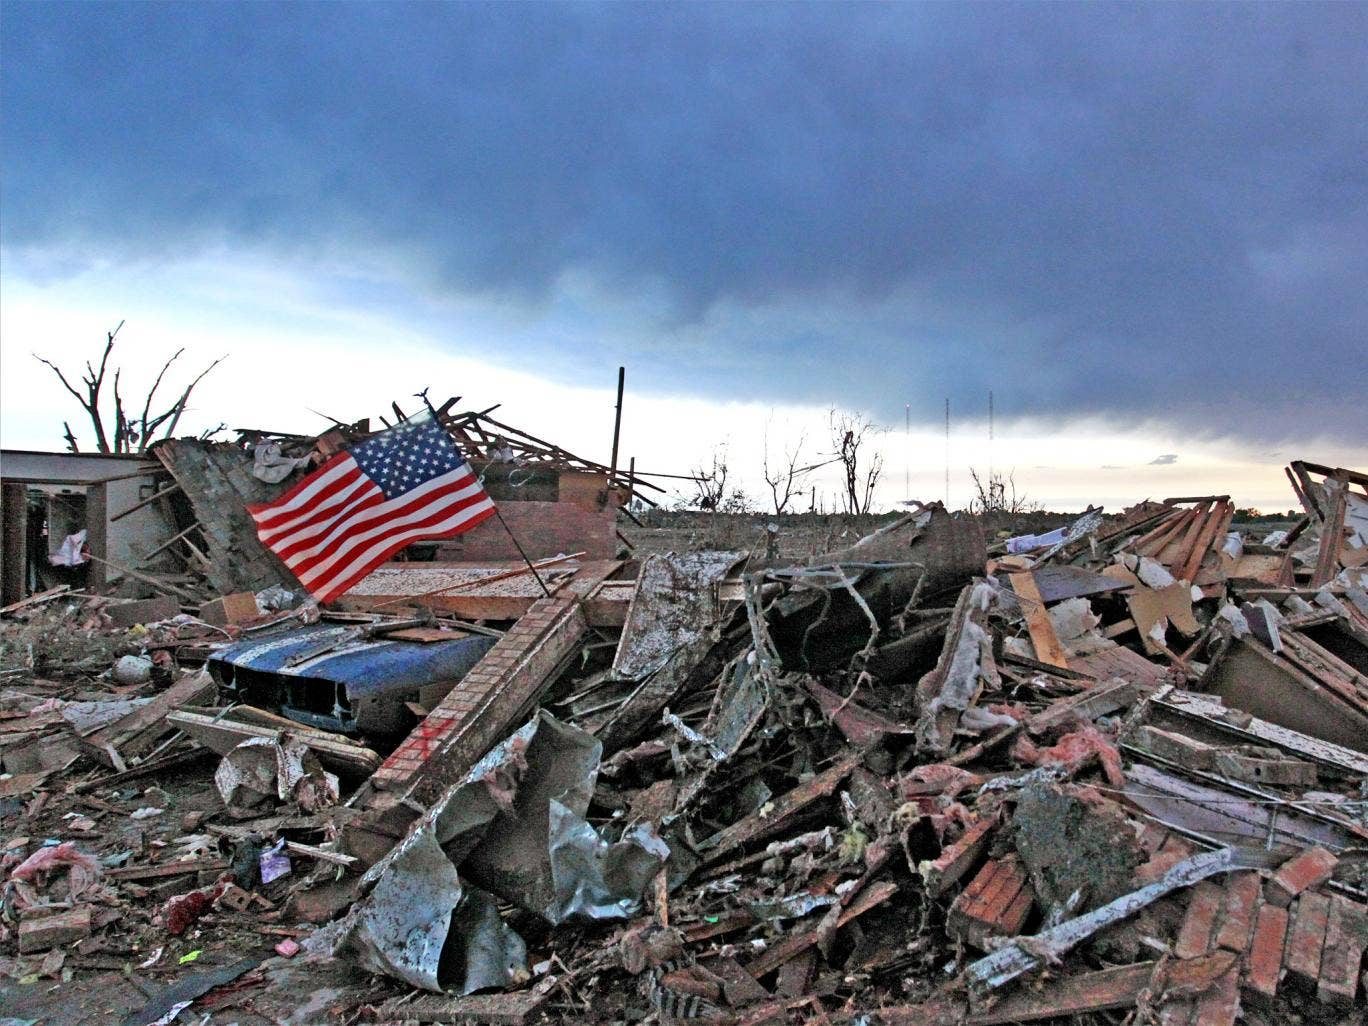 An American flag blows in the wind at sunrise atop the rubble of a destroyed home